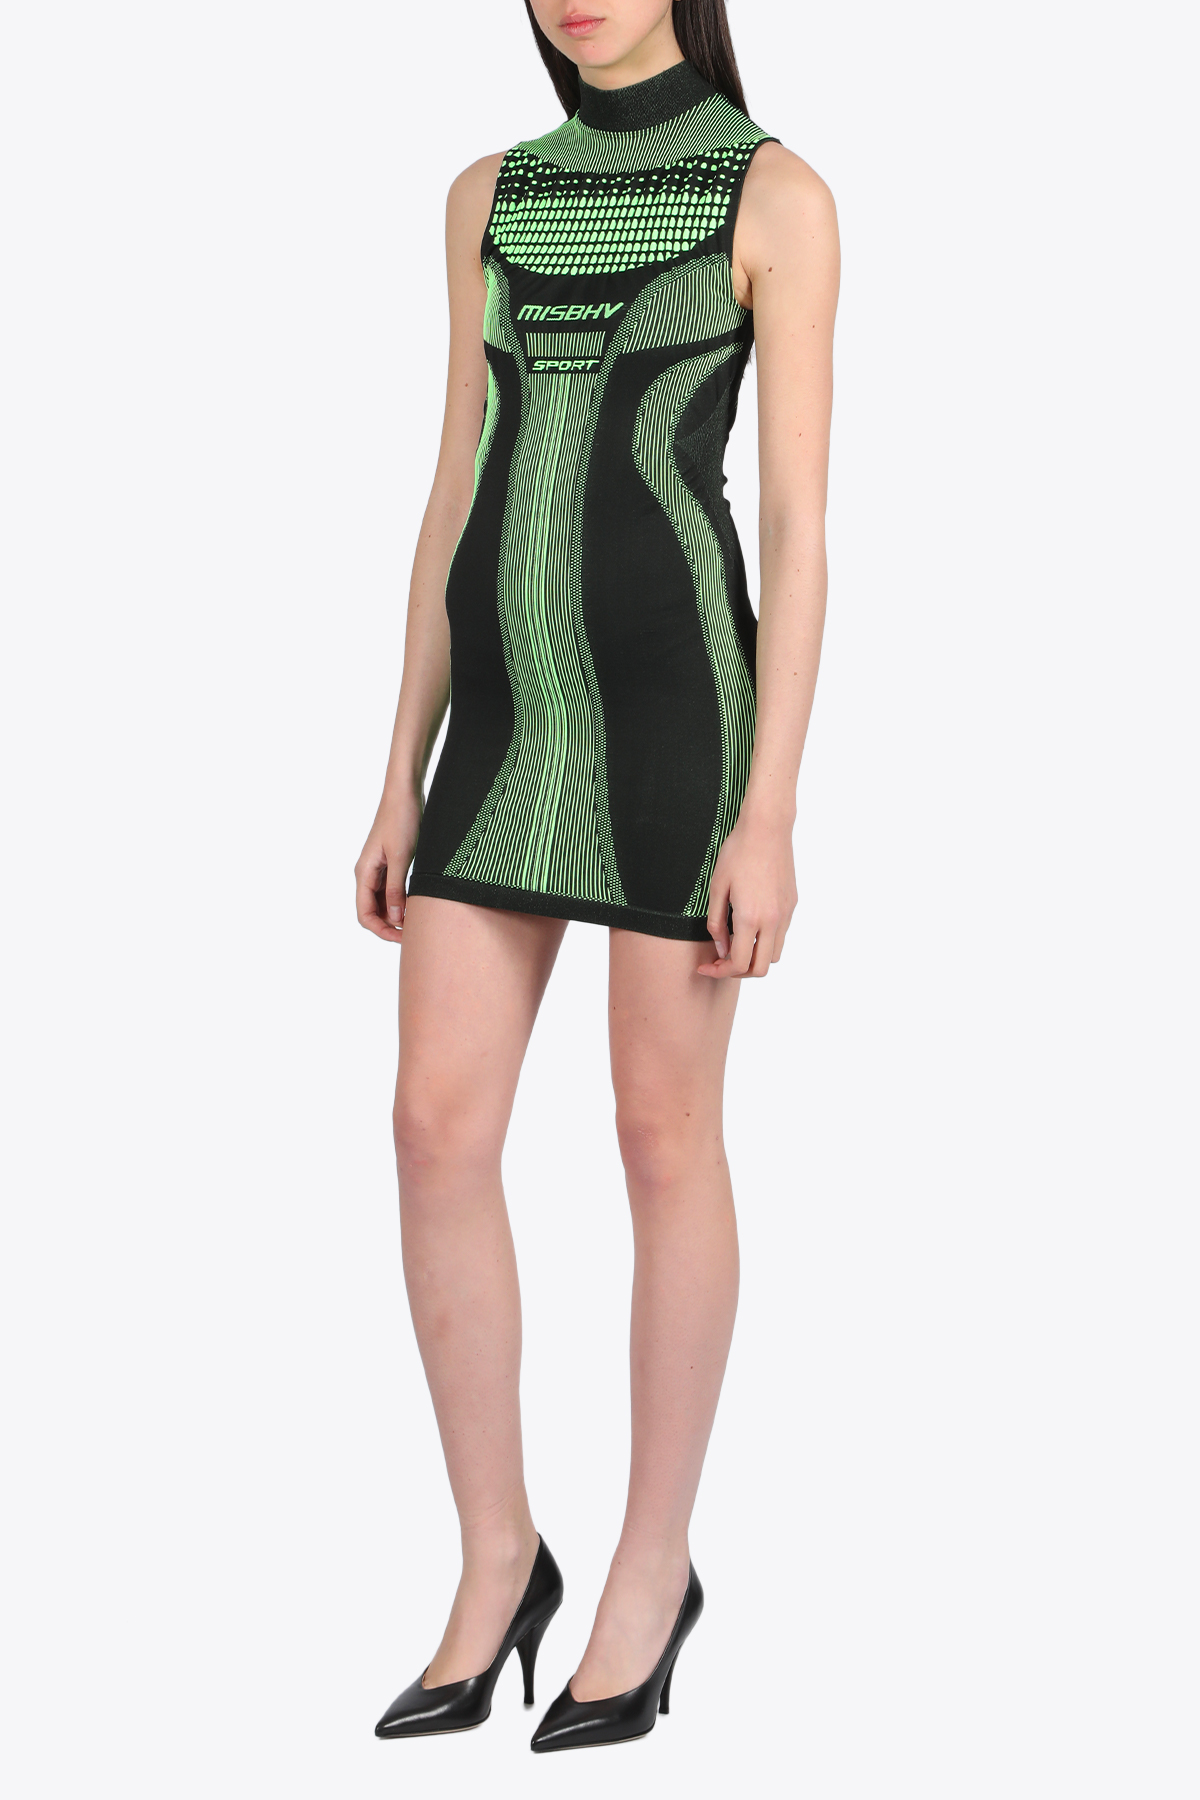 SPORT ACTIVEWEAR MINI DRESS SIGNAL MISBHV | 11 | 020W556 SPORT ACTIVE WEAR MINI DRESS SIGGREEN